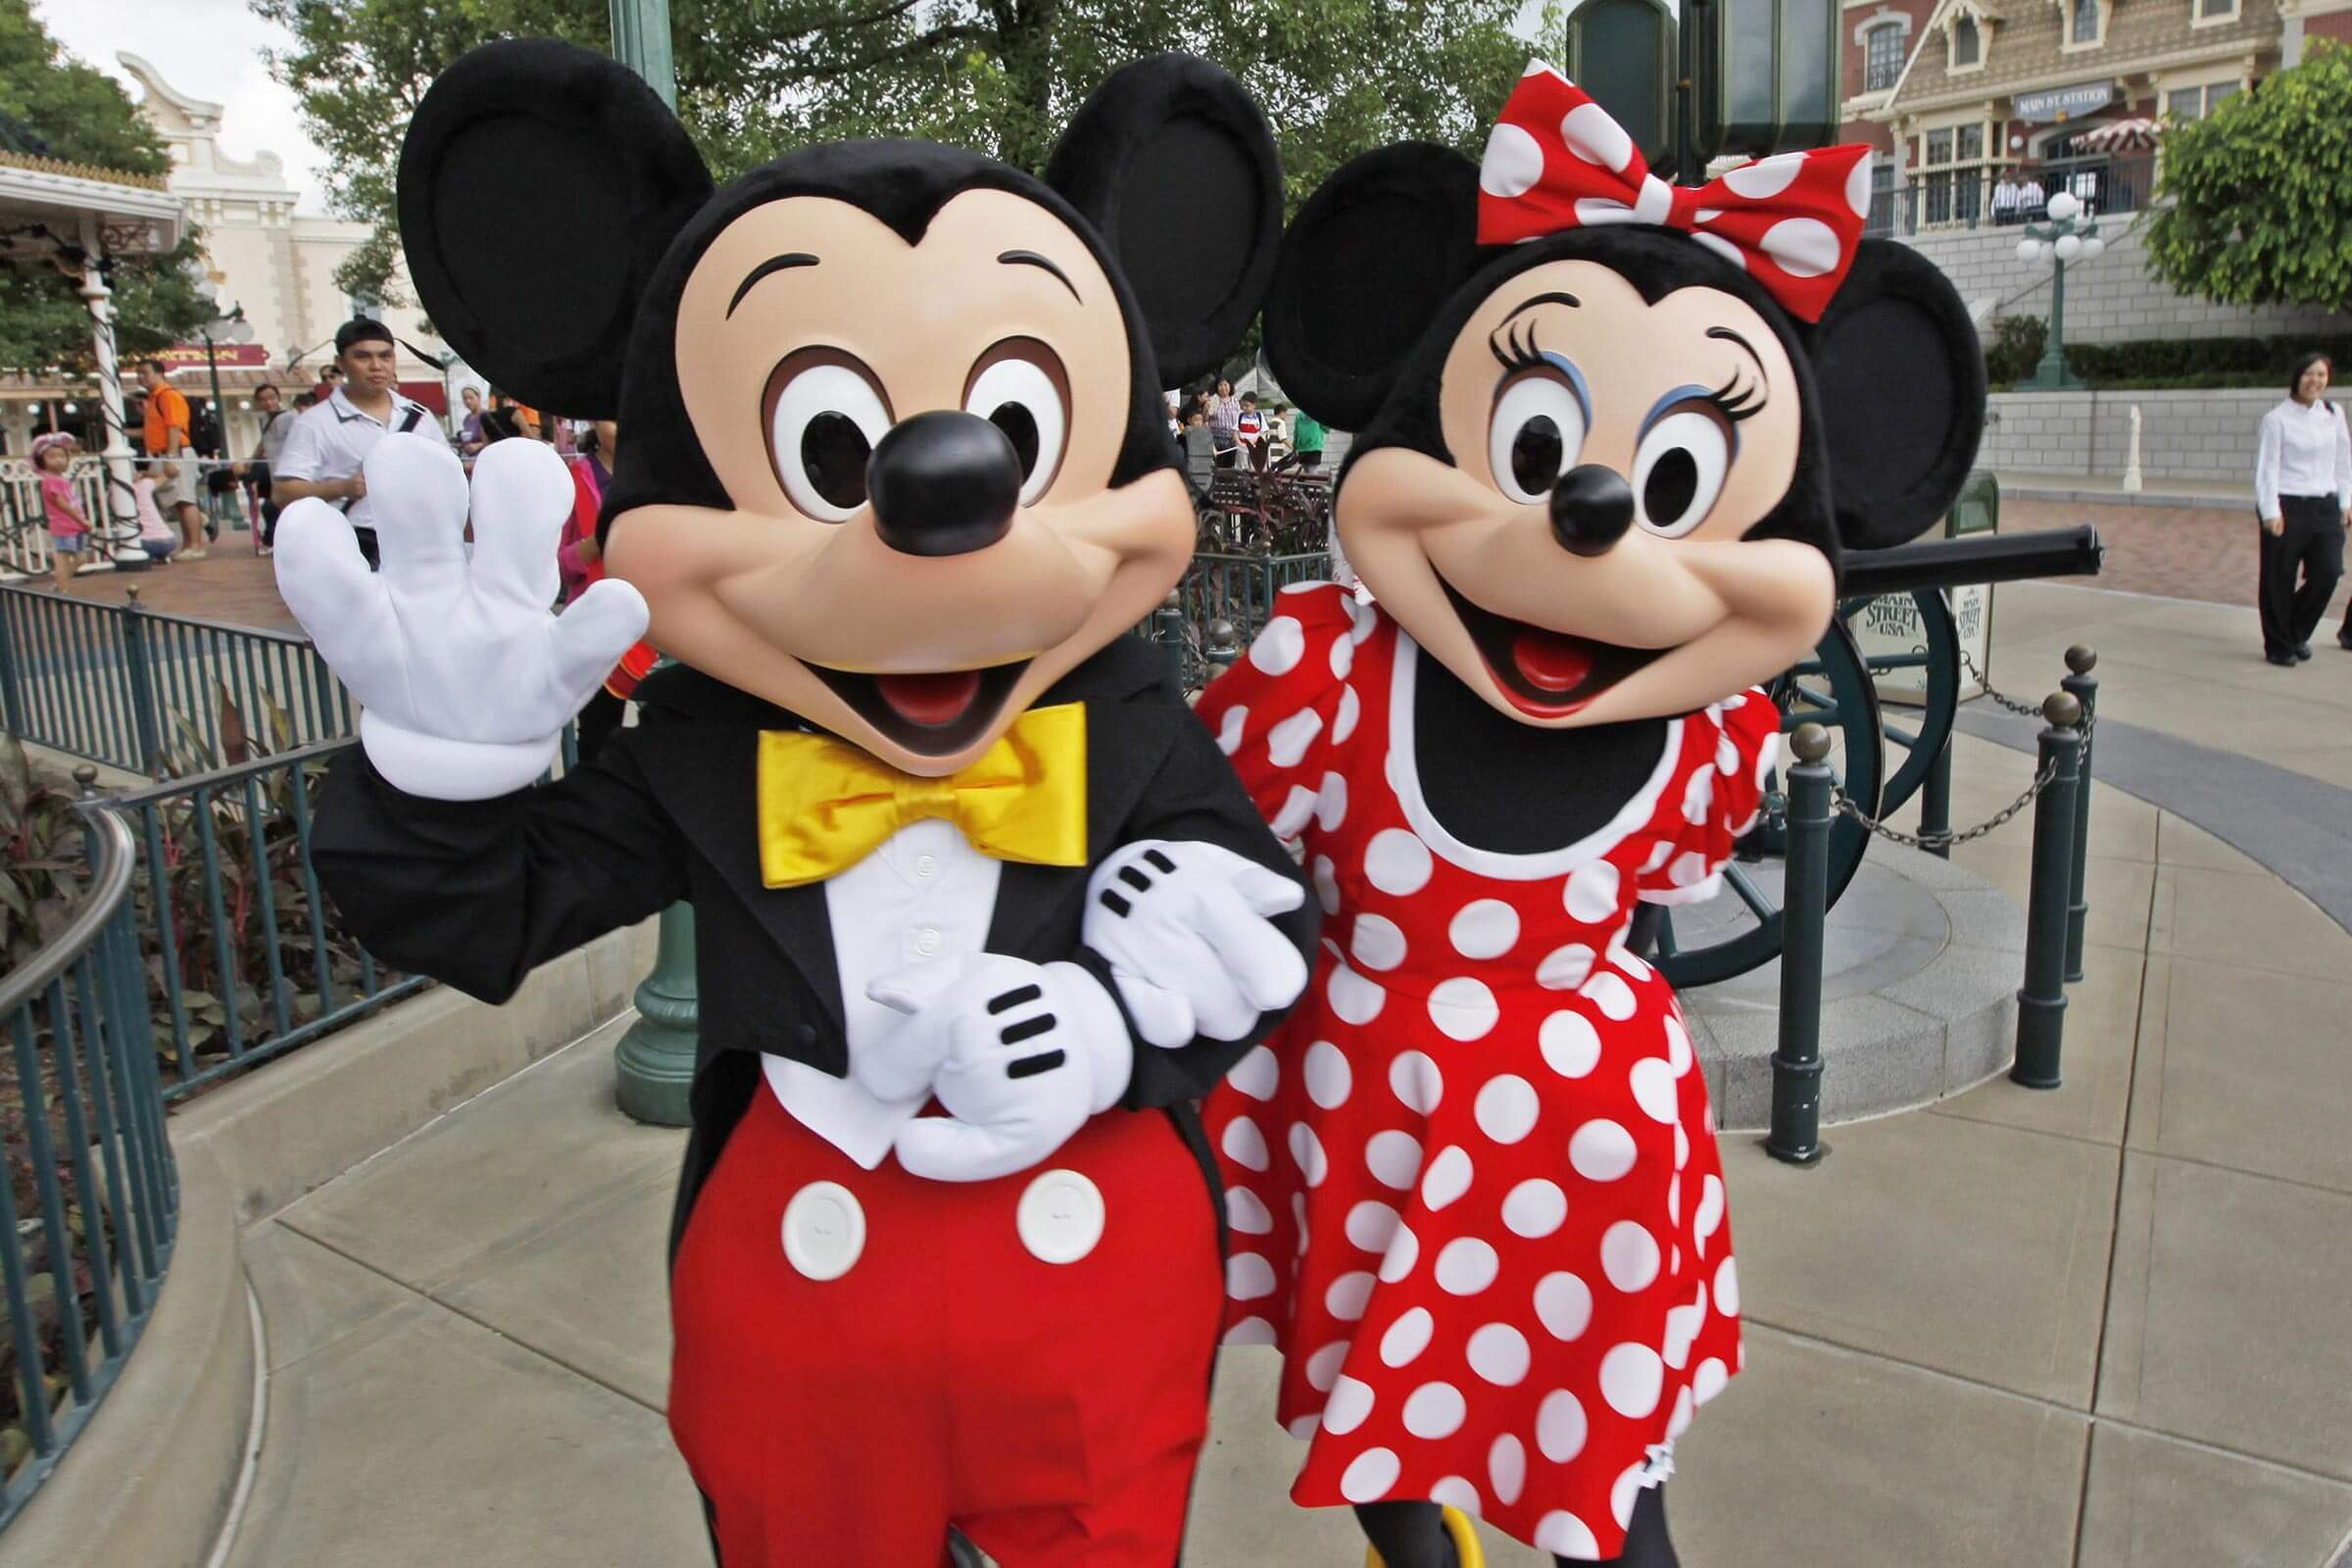 An Actor Clad As Cartoon Characters Mickey Mouse ( L) and Minnie Mouse Gesture at Hong Kong Disneyland Resort in Hong Kong China 12 September 2010 on the Day to Mark the 5th Anniversary Celebration Benefited From the Fast Economic Growth the Number of Visitors Expected to 5 Million in 2009-10 From 4 57 Million in 2008-09 Hong Kong Disneyland Resort Managing Director Andrew Kam Said to the Press Hong Kong Disneyland a Joint Venture Between the Us Walt Disney Co and Hong Kong Government China Hong Kong